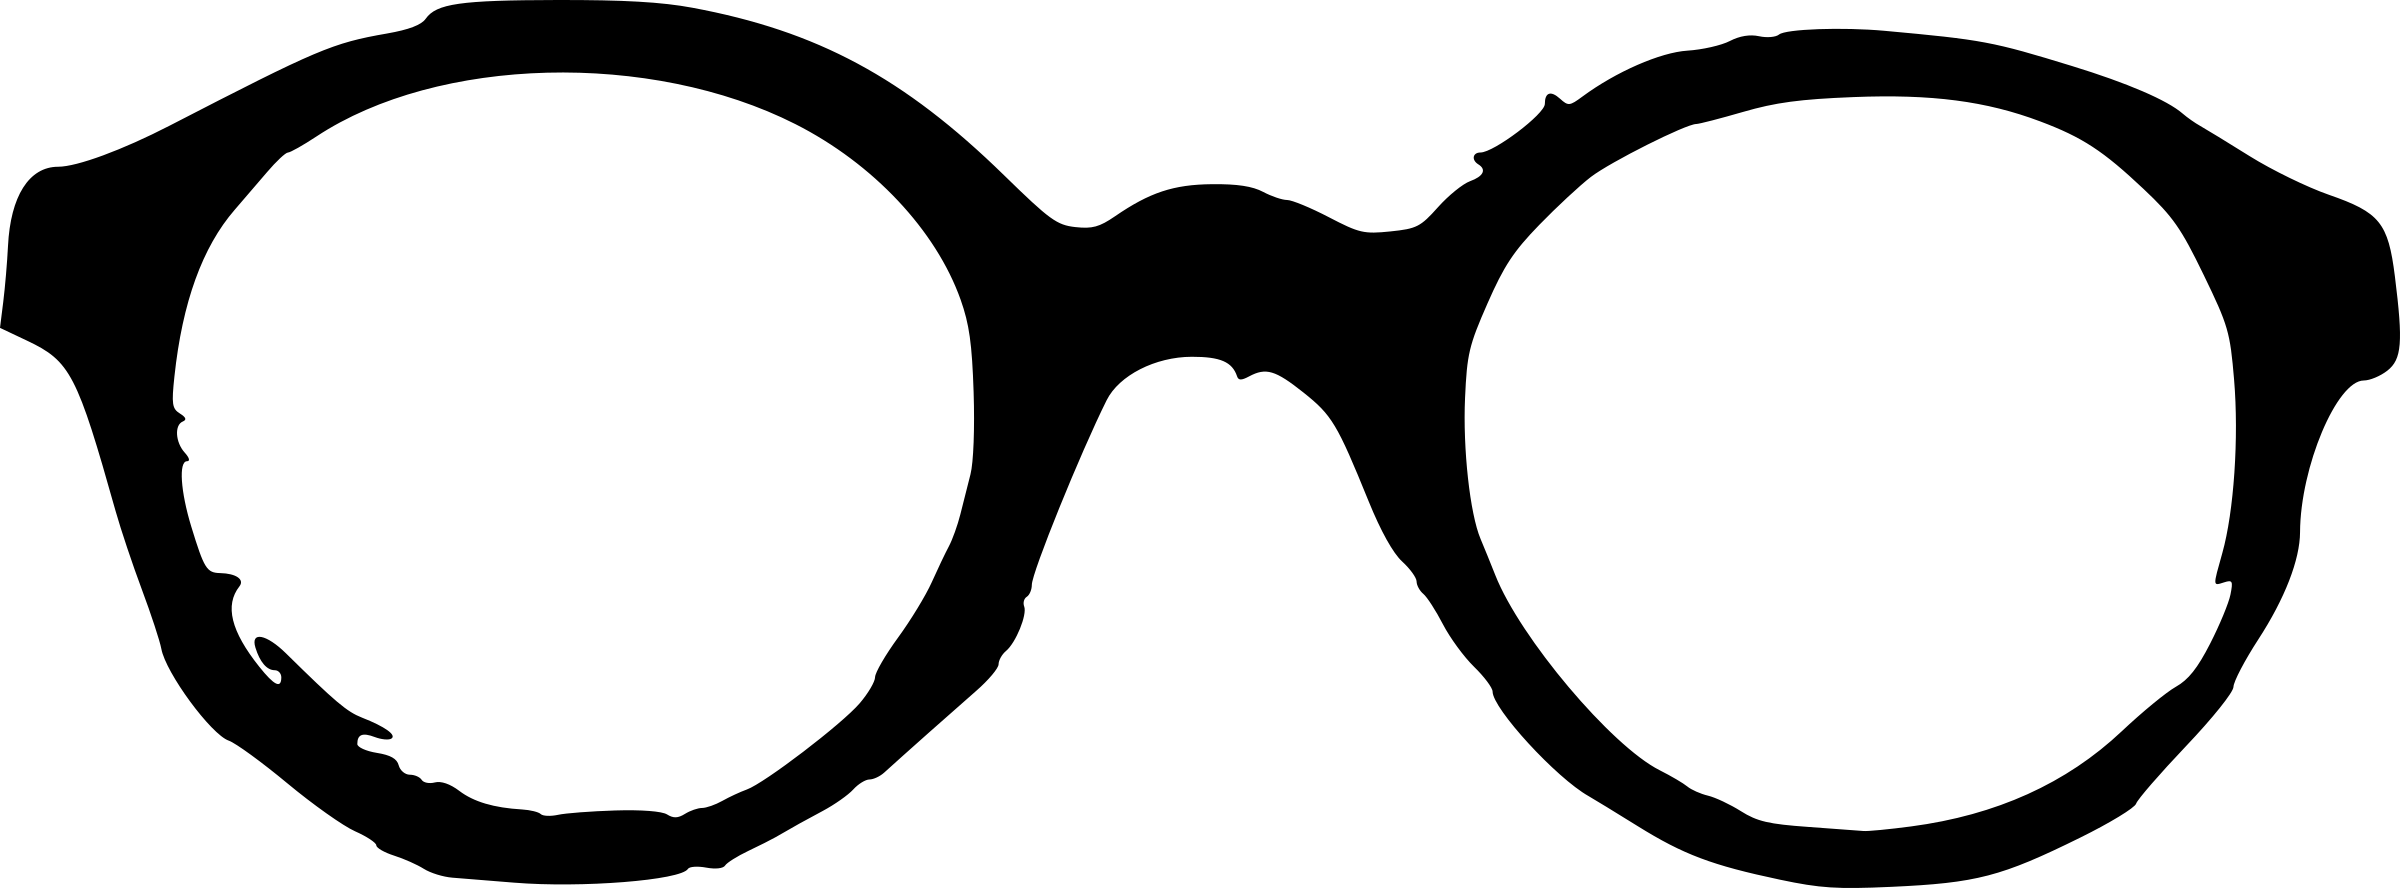 Free Big Glasses Cliparts Download Free Clip Art Free